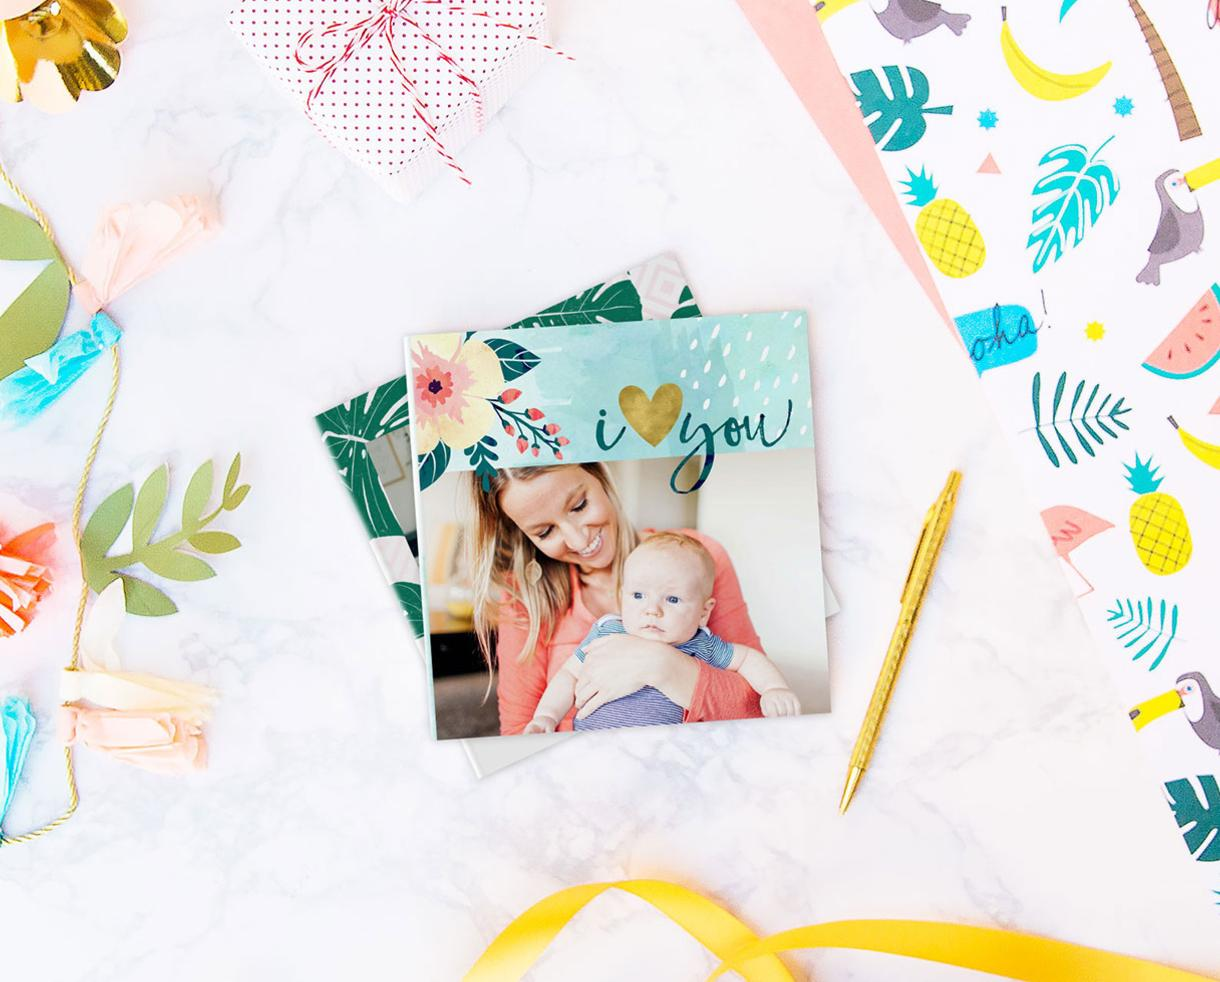 FREE 6x6 Photo Book From Mixbook!